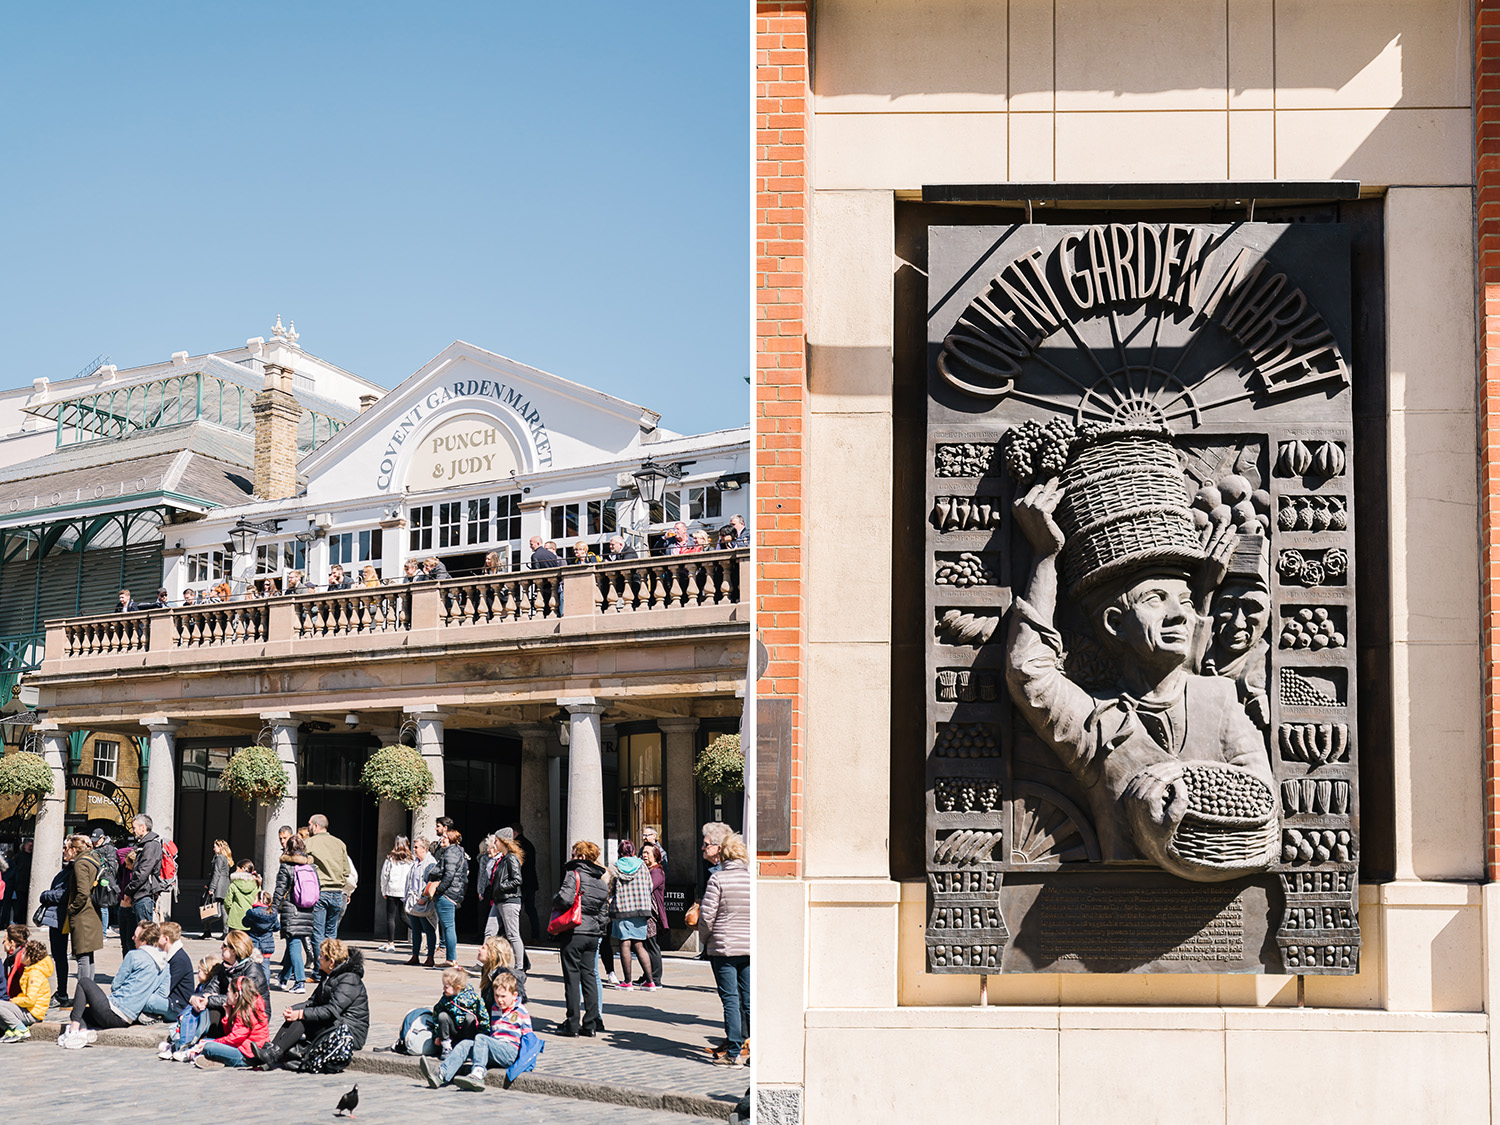 coventgarden_london2019-004.jpg